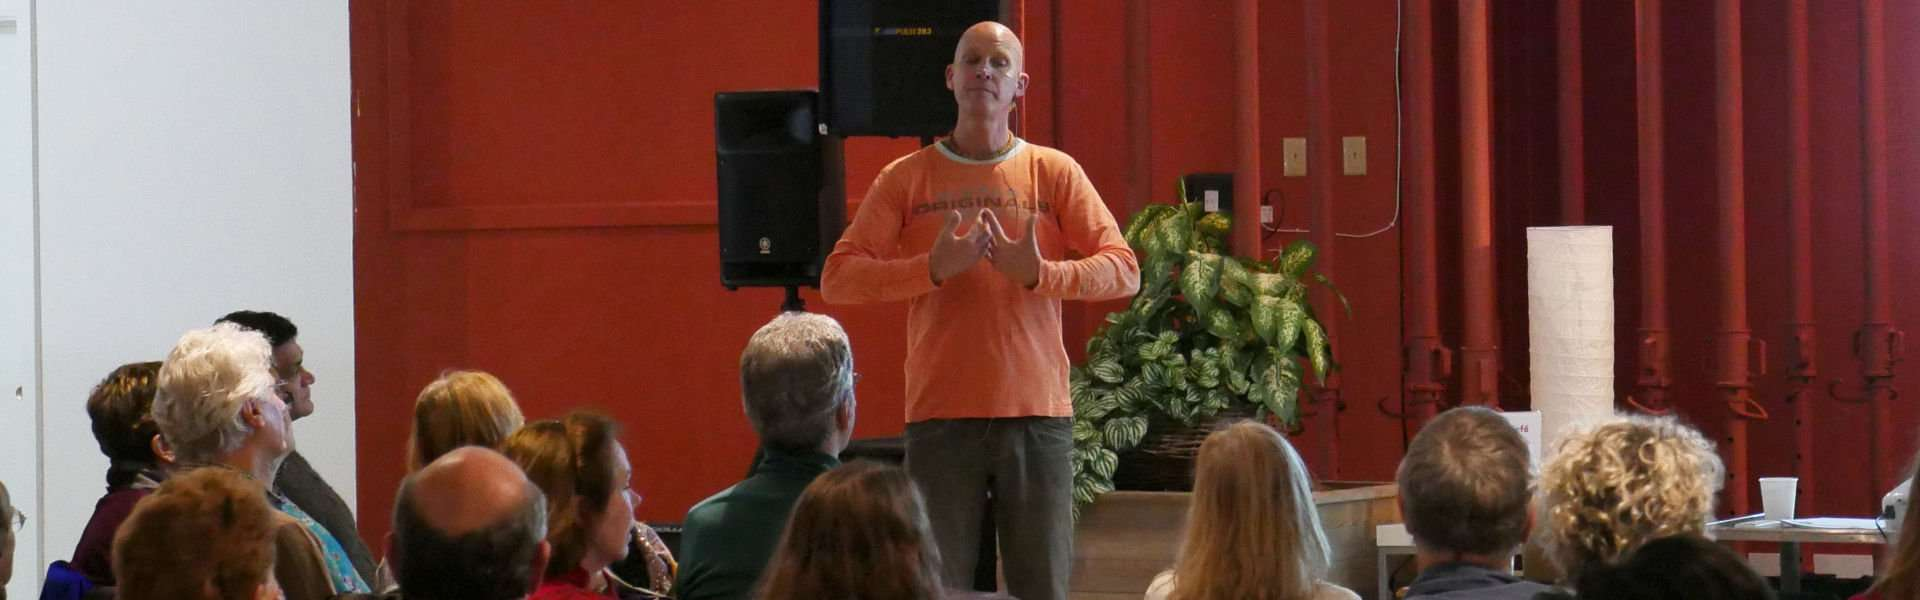 Energetics Communication Event Unity Vancouver | Dirk Terpstra